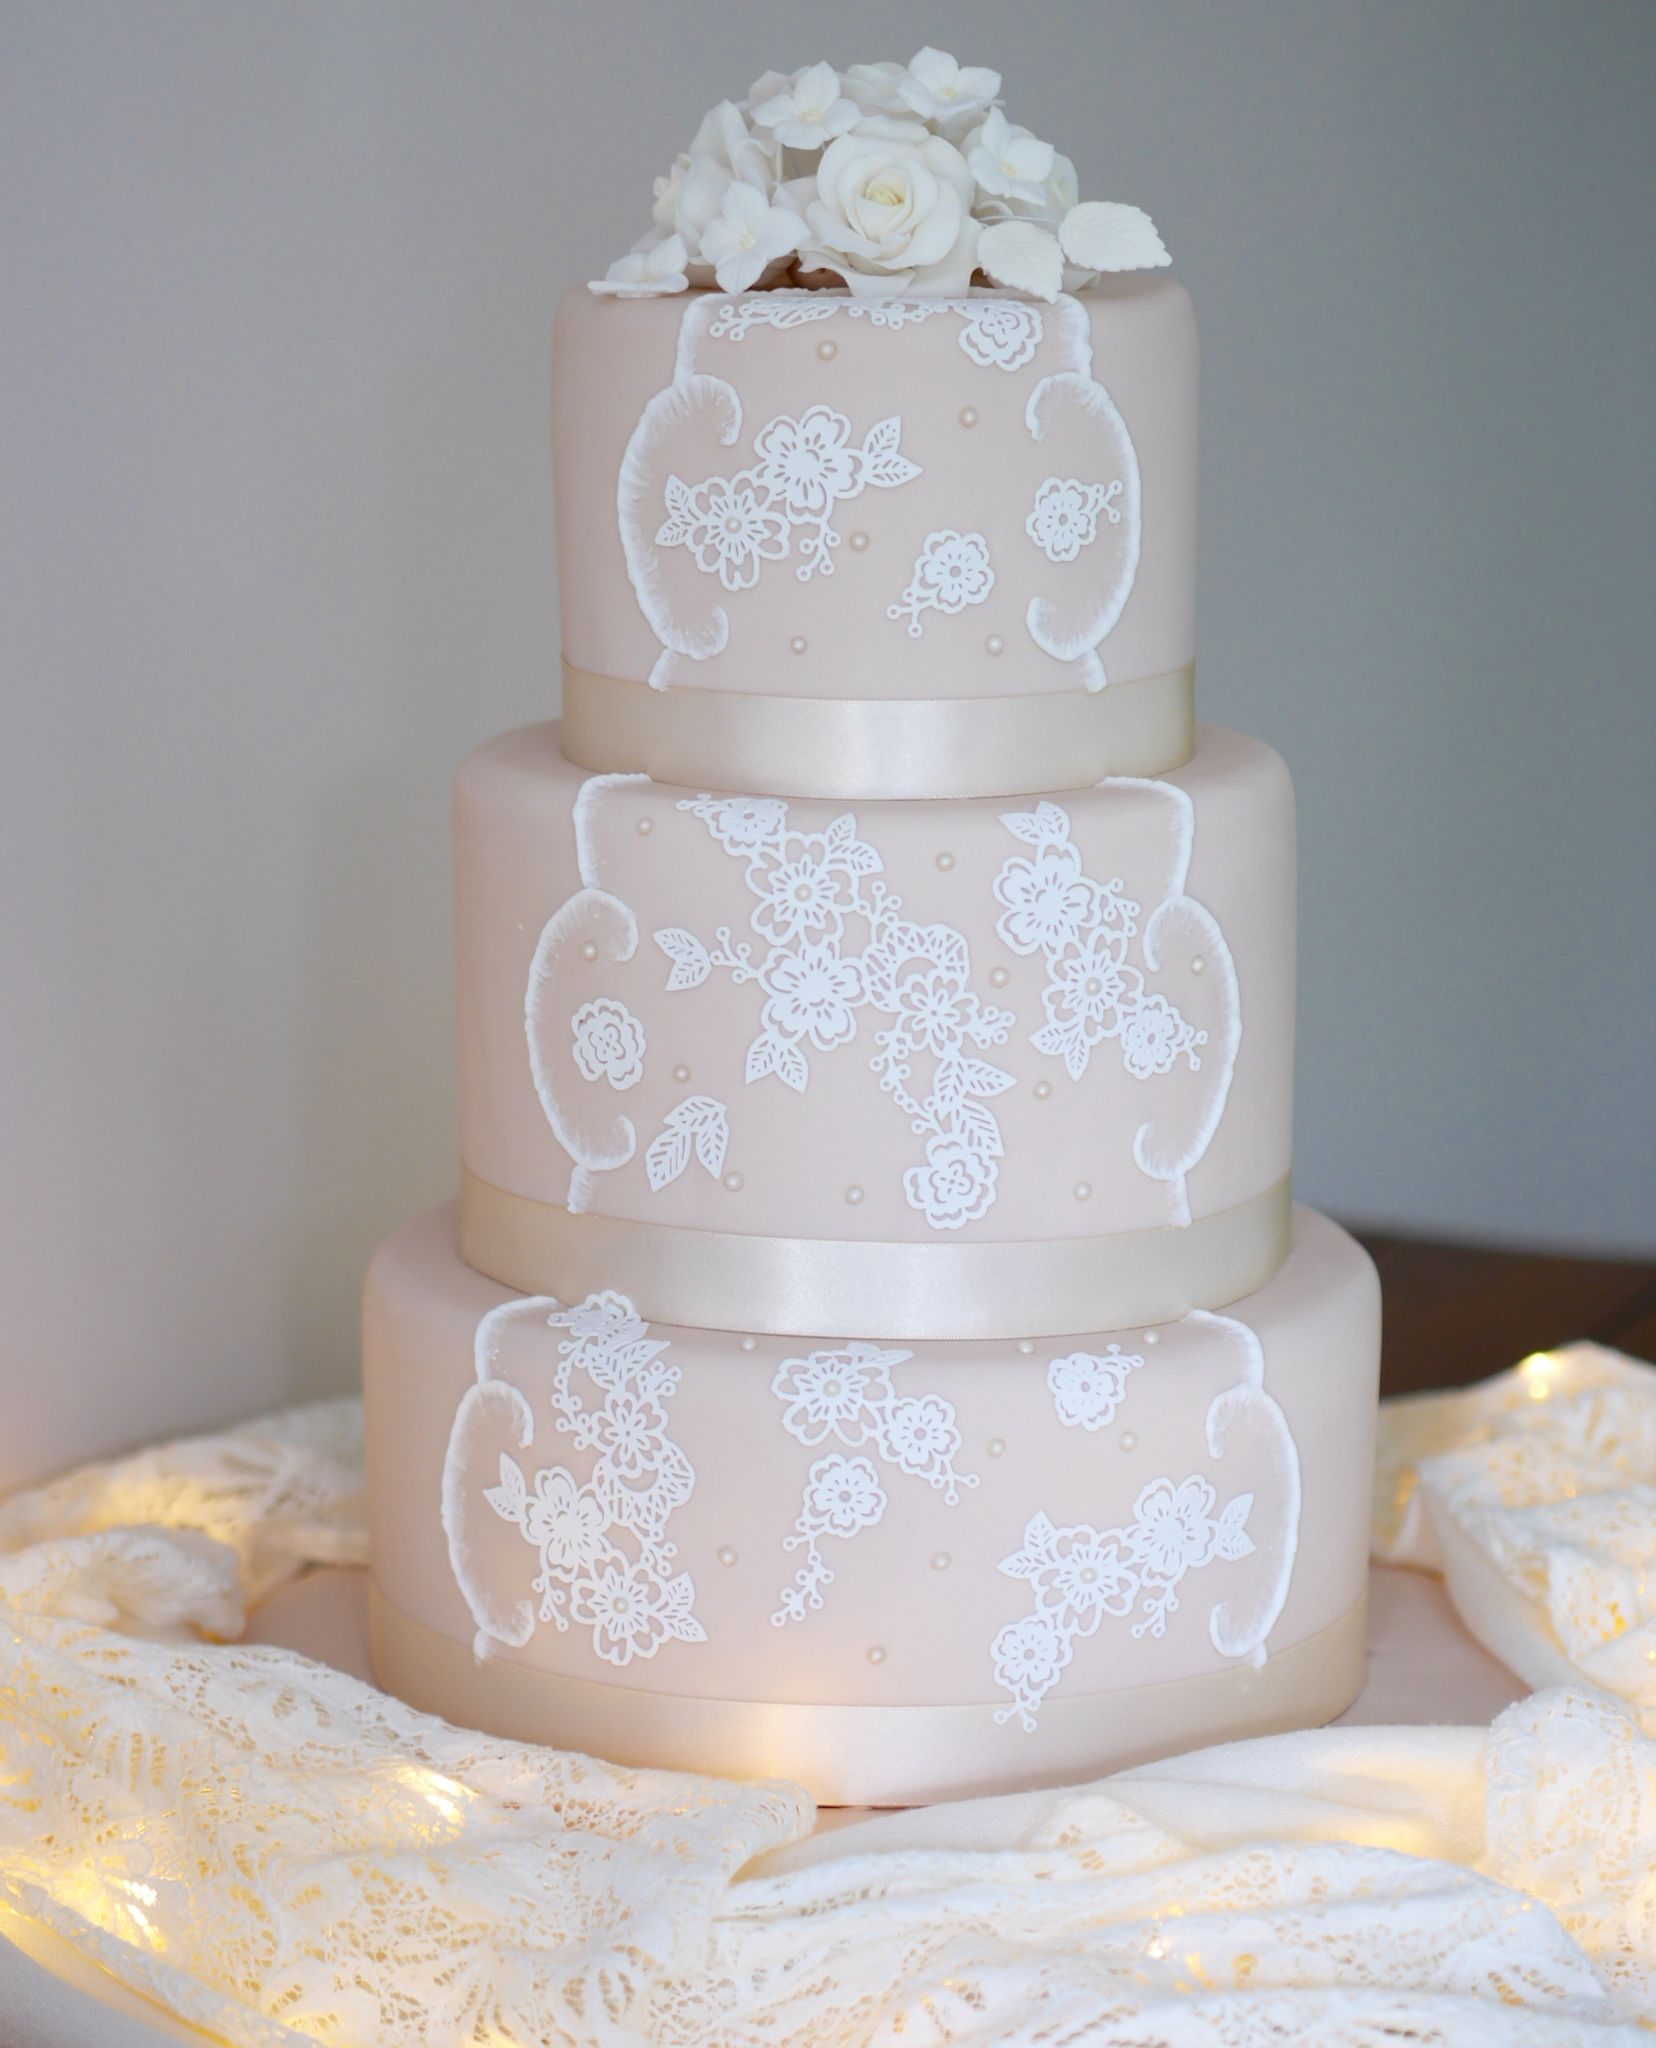 Lace cake with white gumpaste flowers the lace was created using